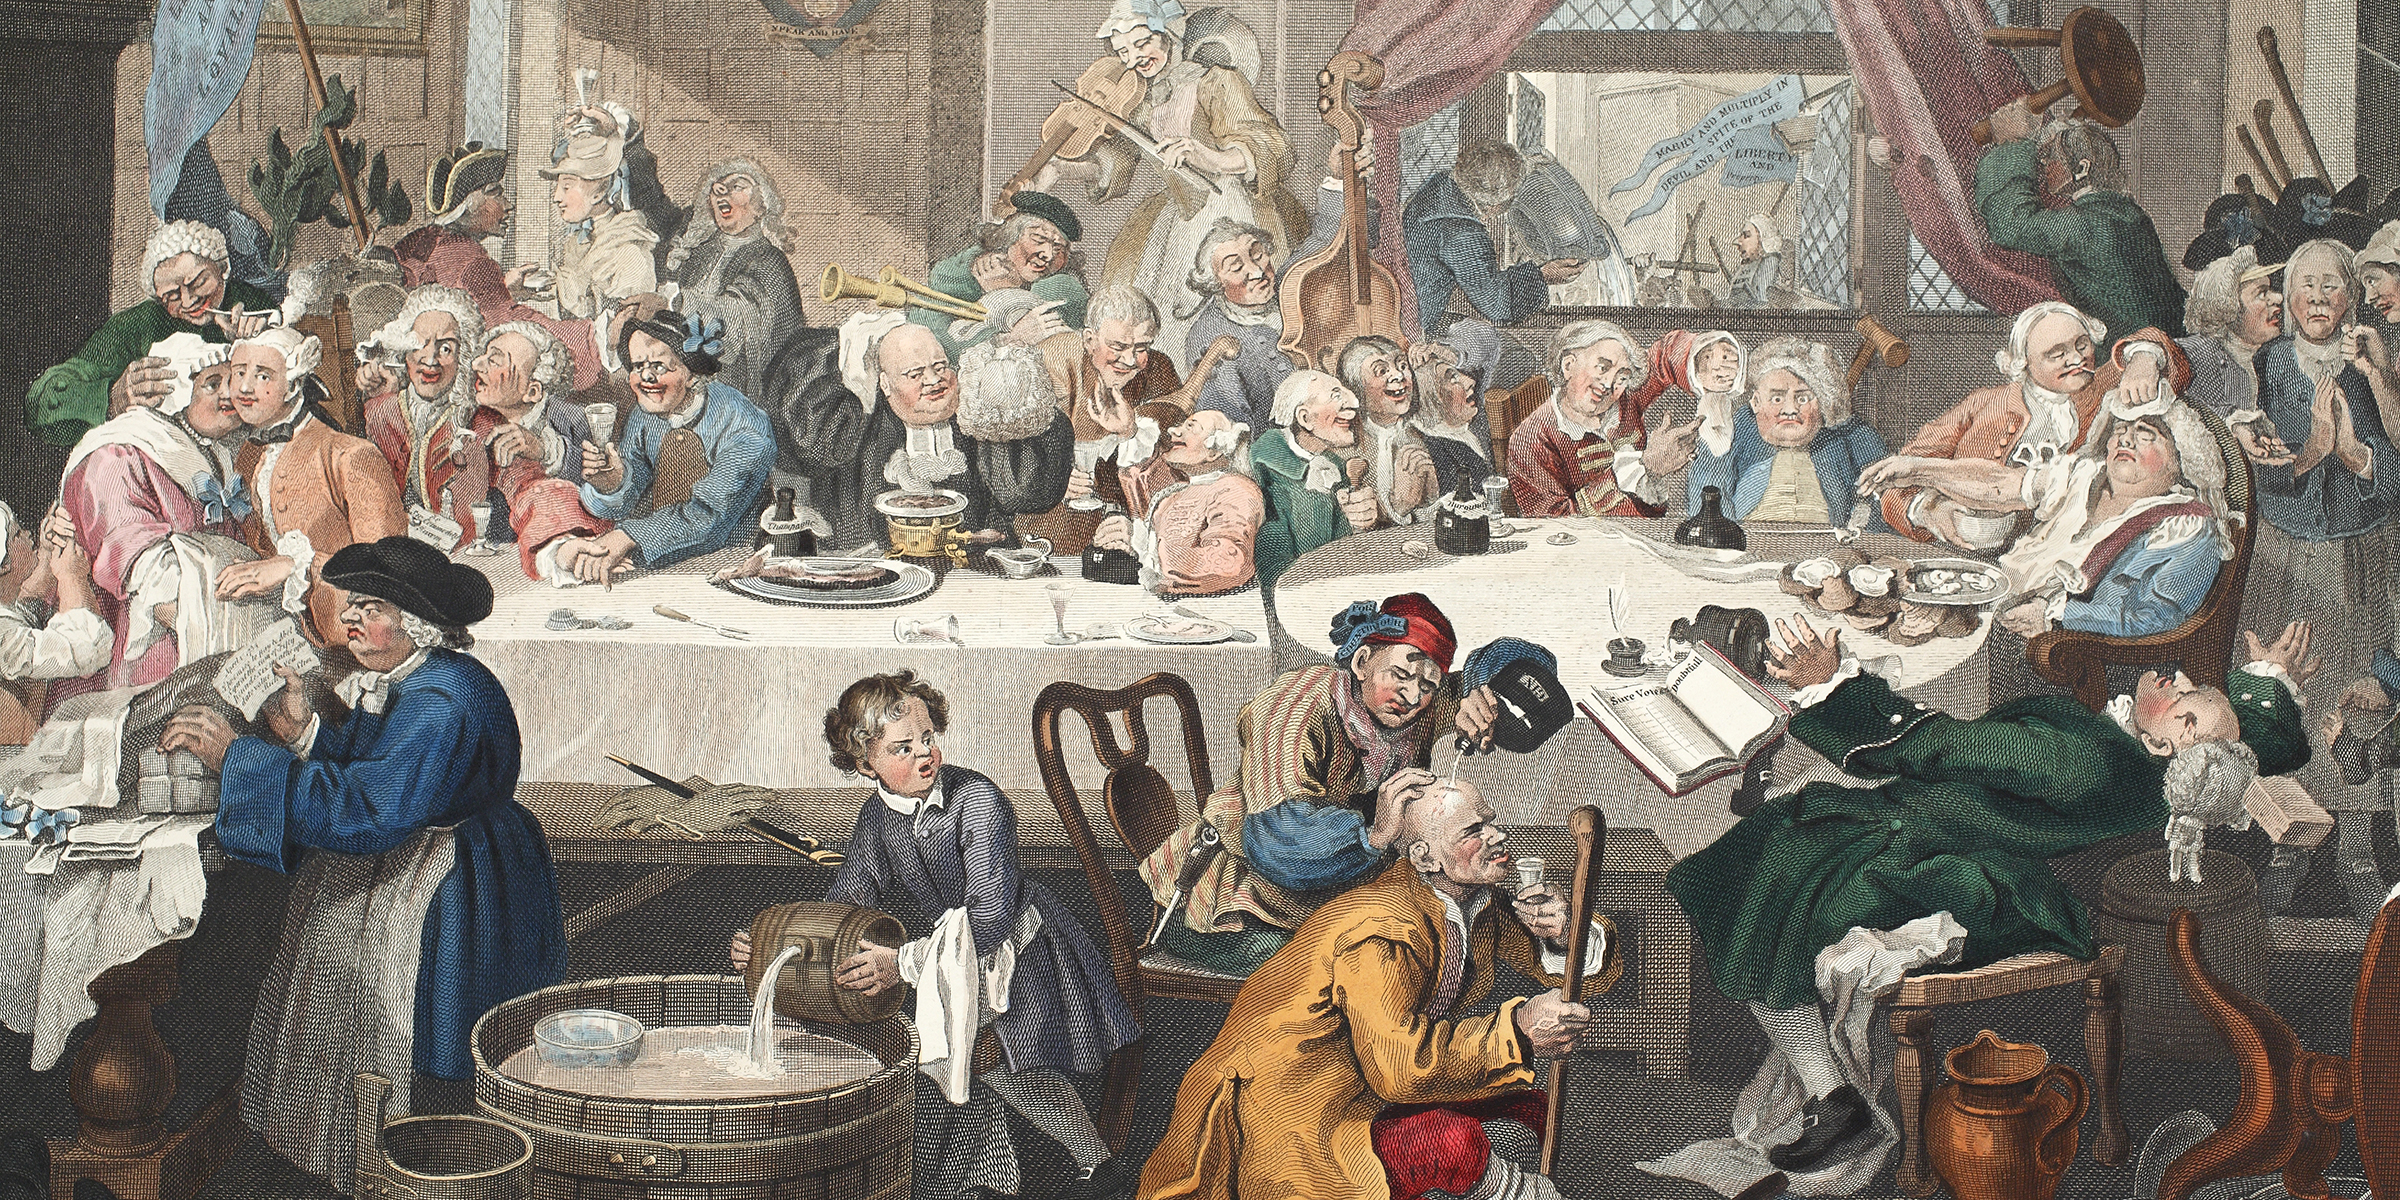 An Election Entertainment (detail), engraving by Thomas Cook after William Hogarth, 1812.